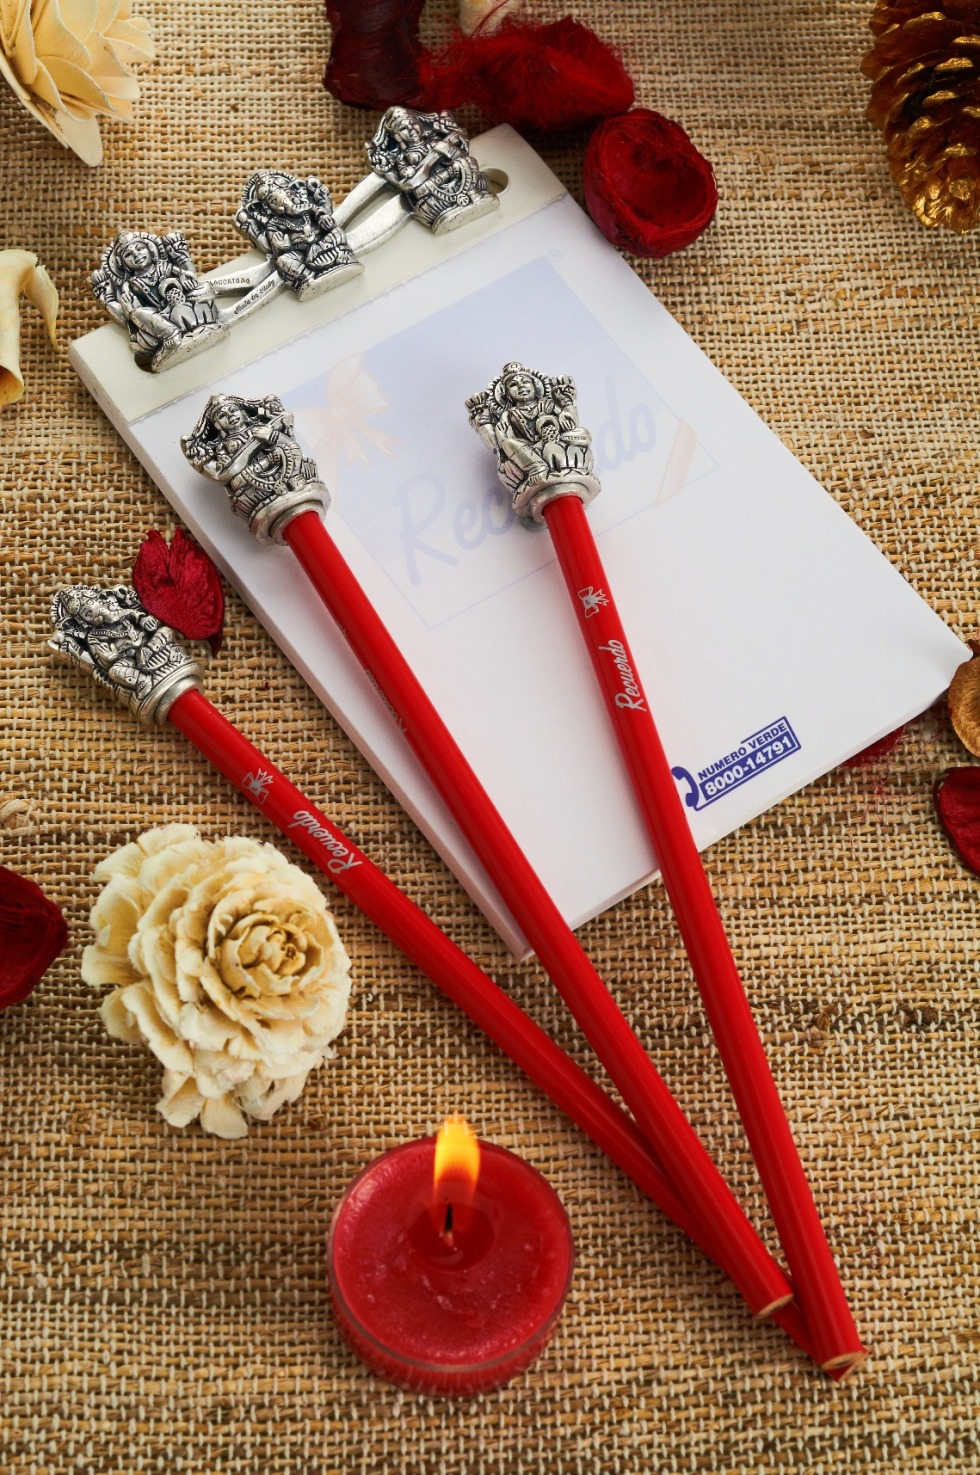 d'mart Exclusif IOTA silver-plated Ganesh and Saraswati pencil, Rs 900 each